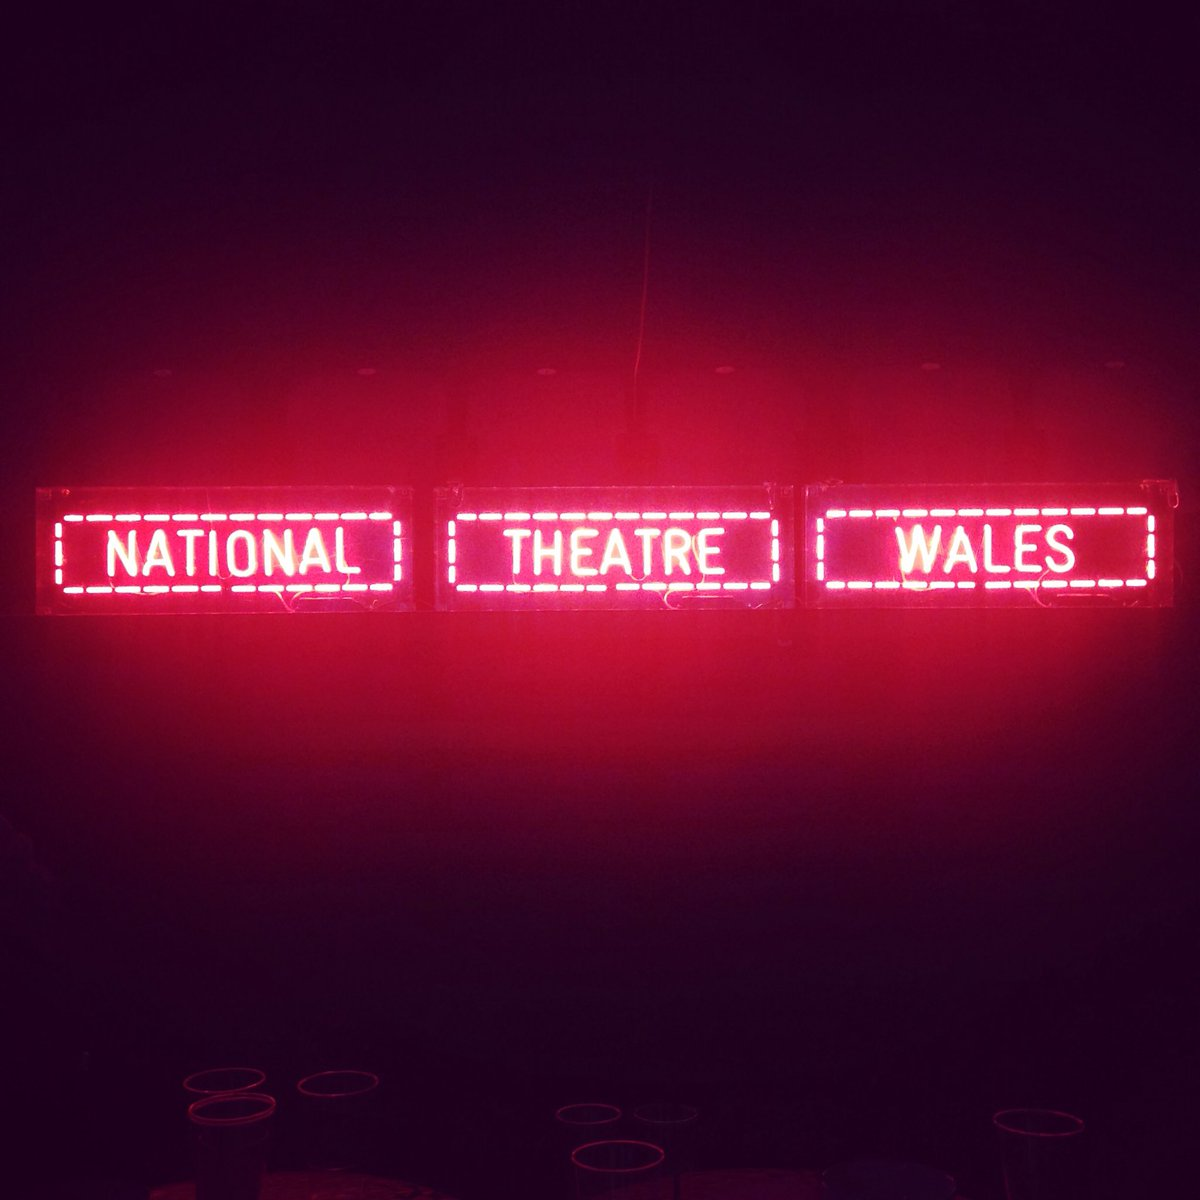 Neons still got it #ntwBangor  #ntwTEAM https://t.co/CehfcA10cH